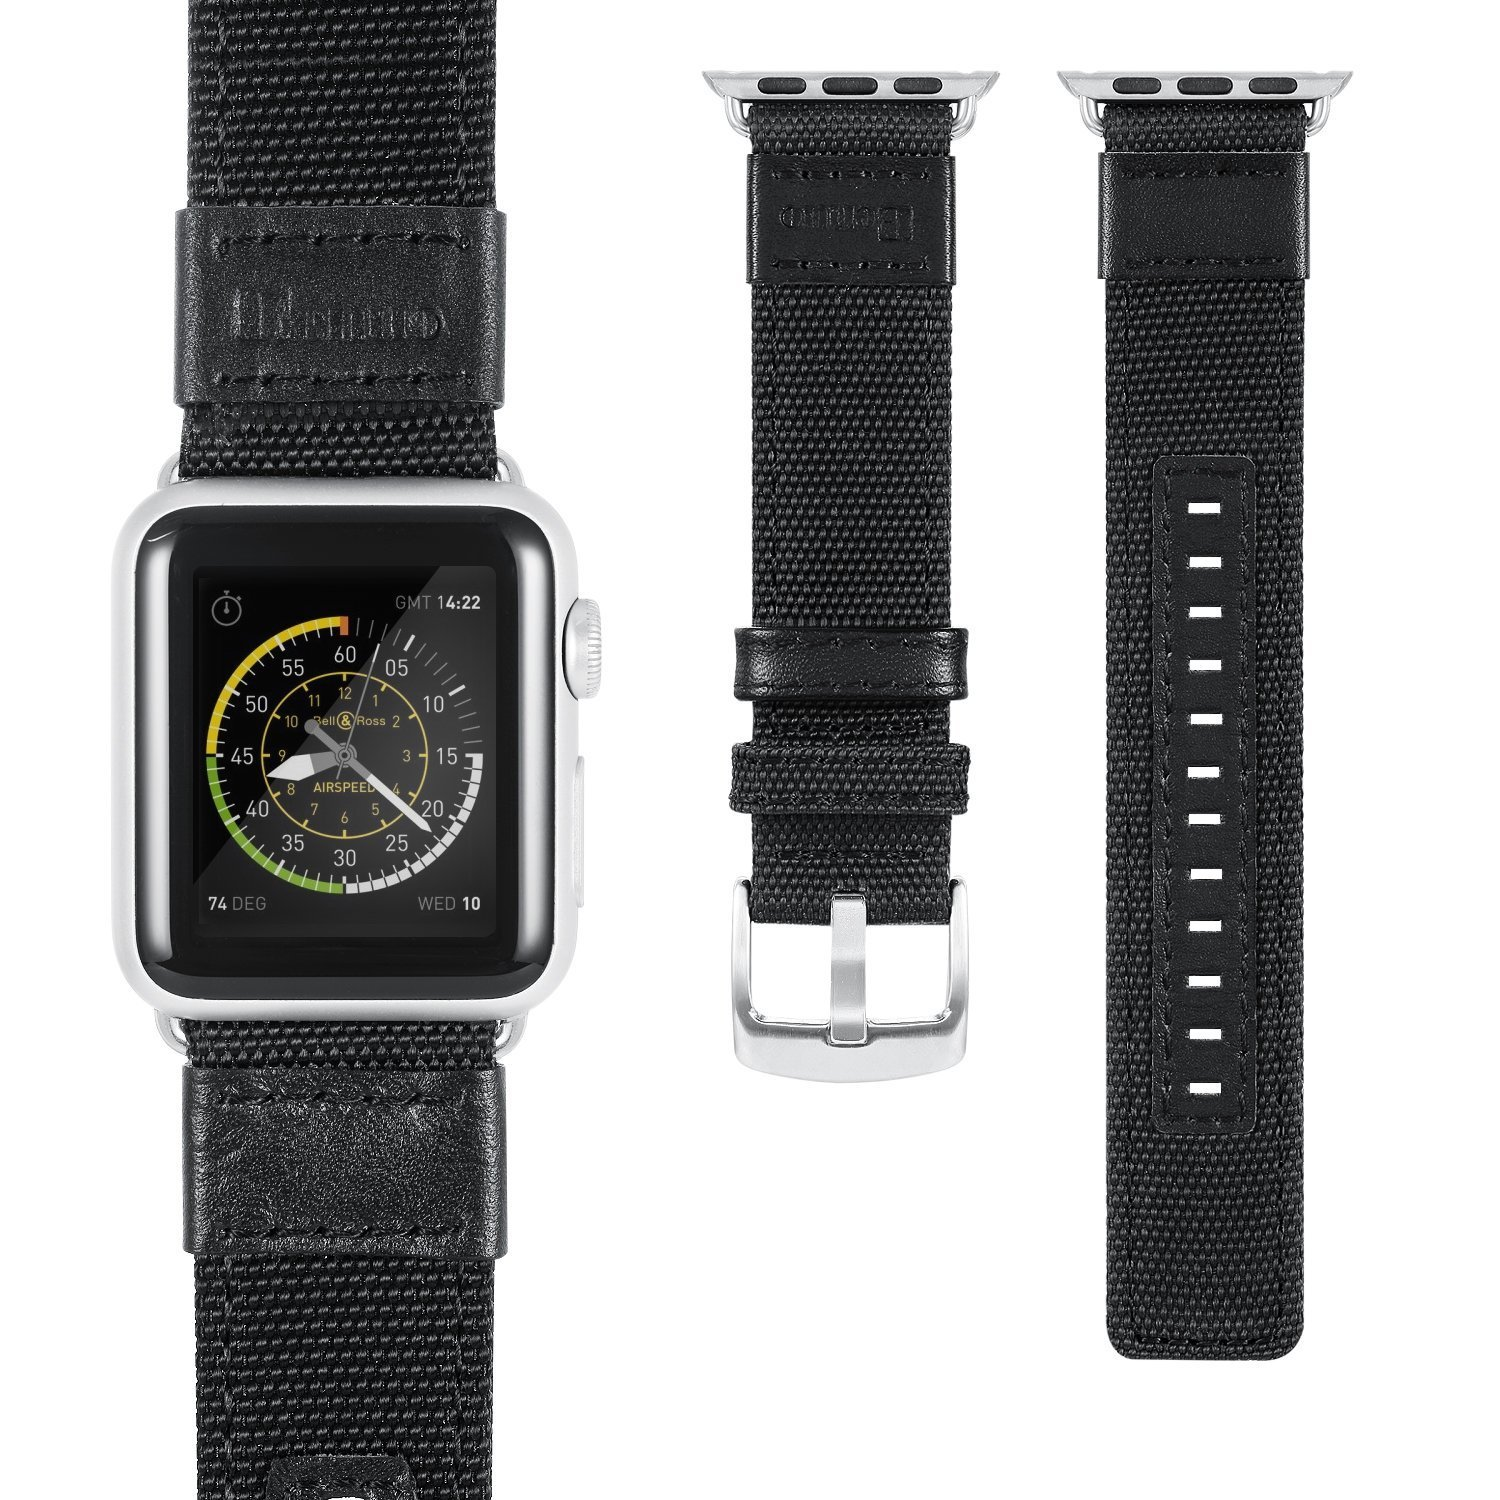 Amazon com apple watch series 3 band benuo premium nylon woven smart watch replacement 38mm wrist strap with adjustable buckle for new apple iwatch